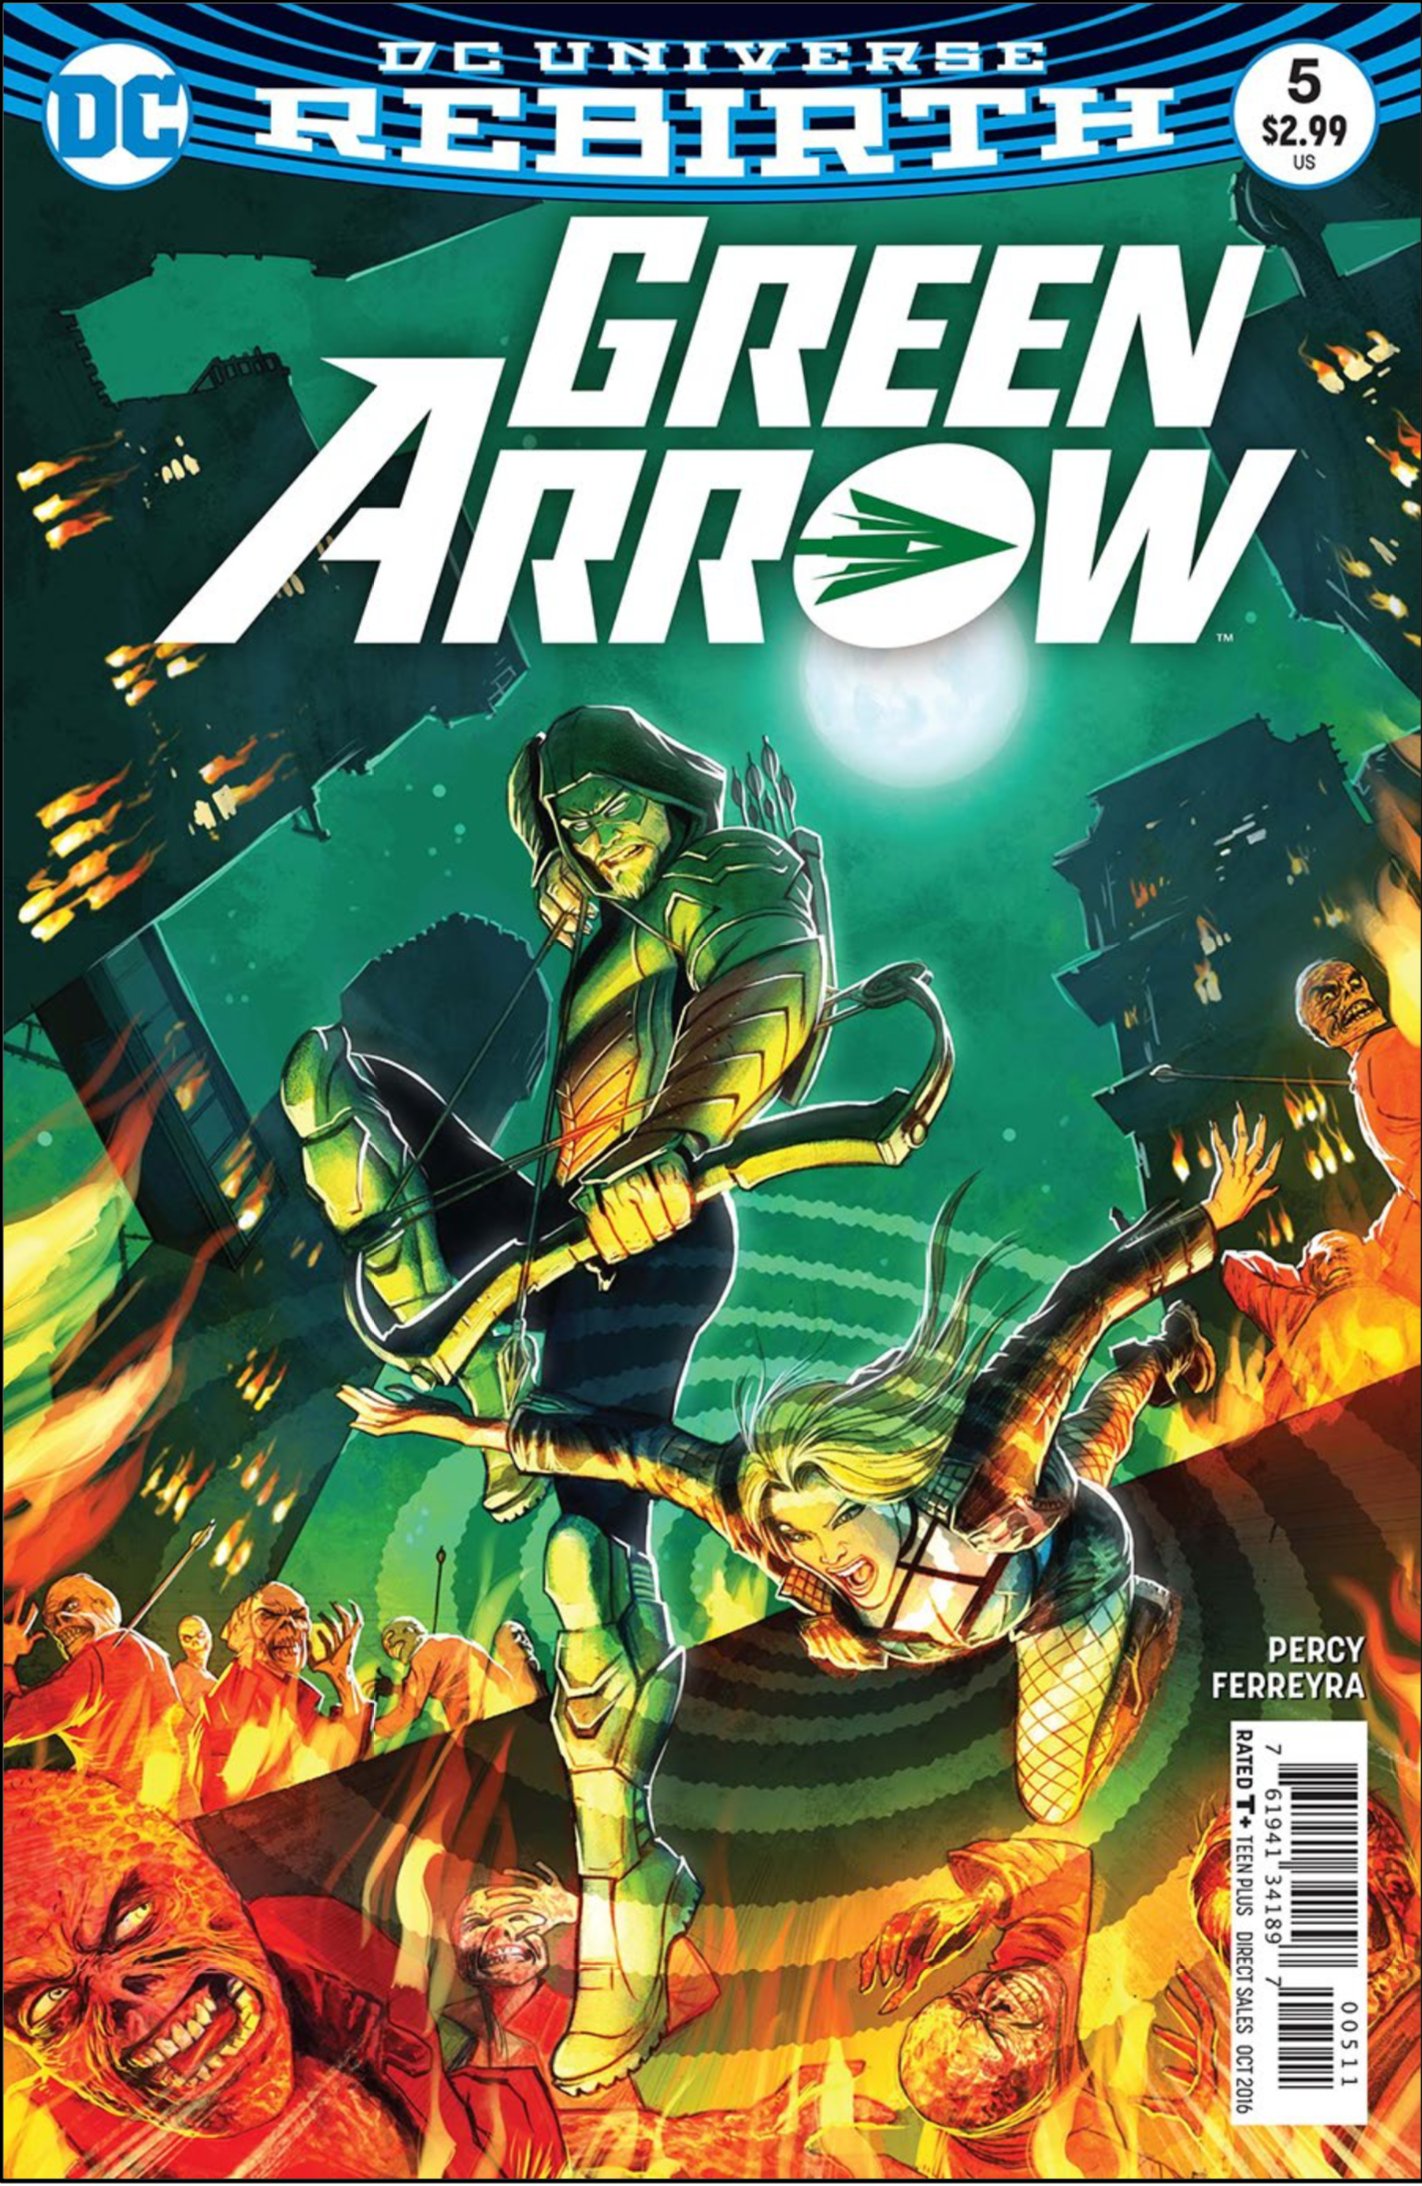 DC Universe Green Arrow wit comic illustration of greenish long-haird man with beard pointing a crossbow at someone.